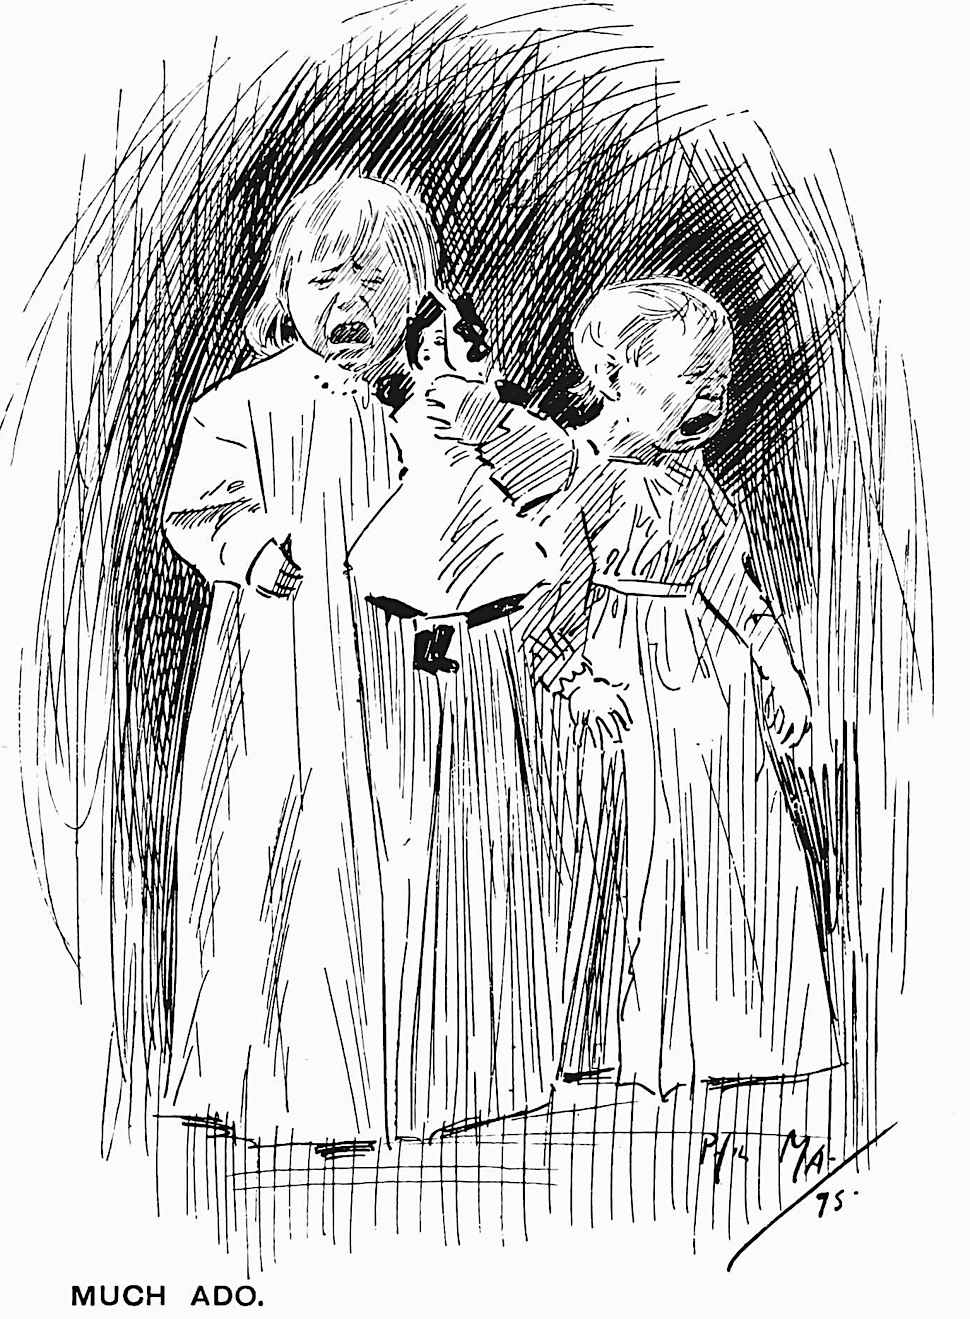 a Phil May 1894 drawing of two crying children called, much ado